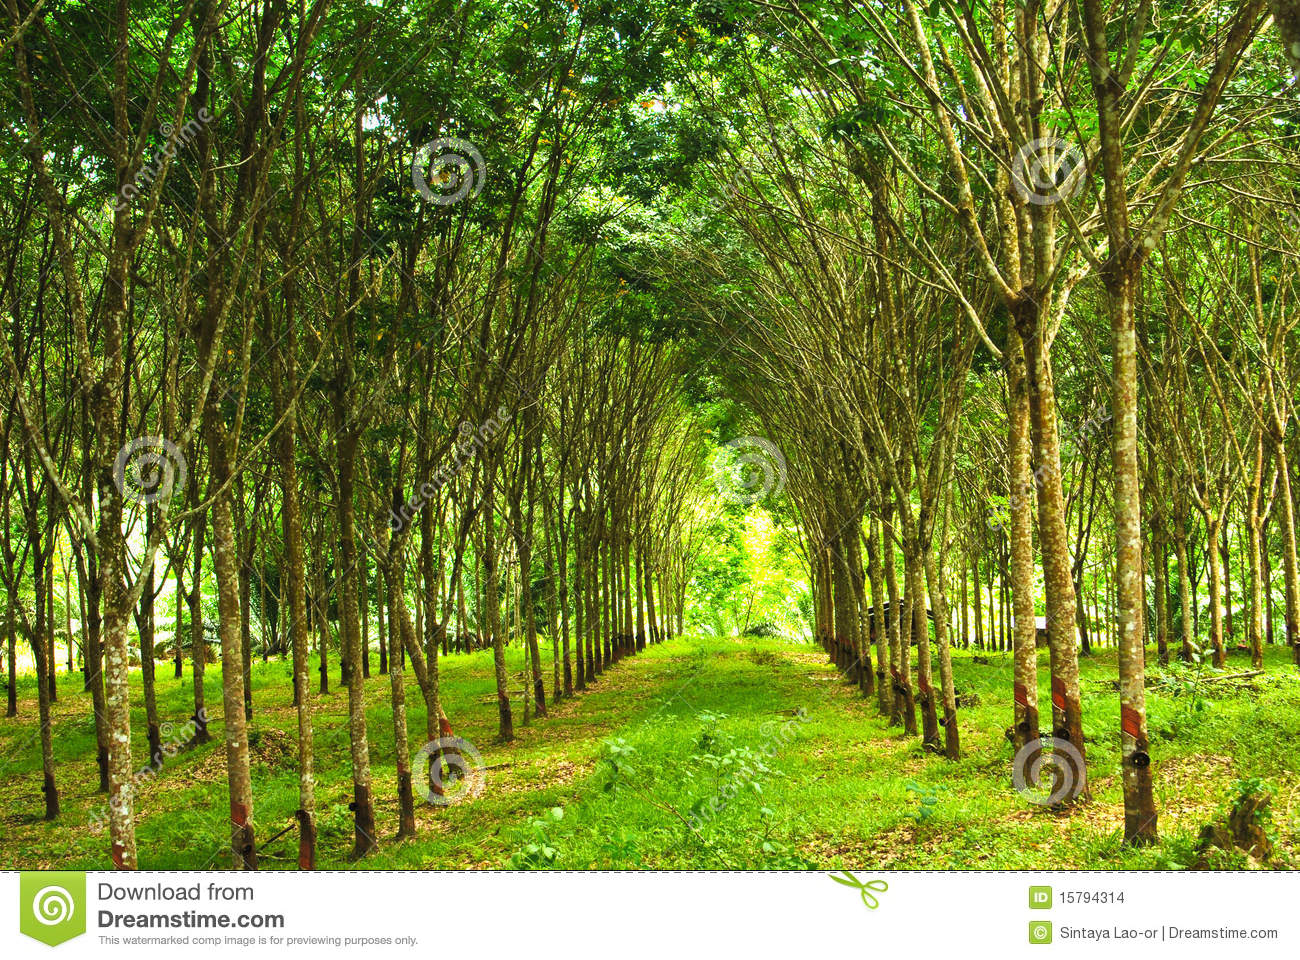 Rubber plantation business plan